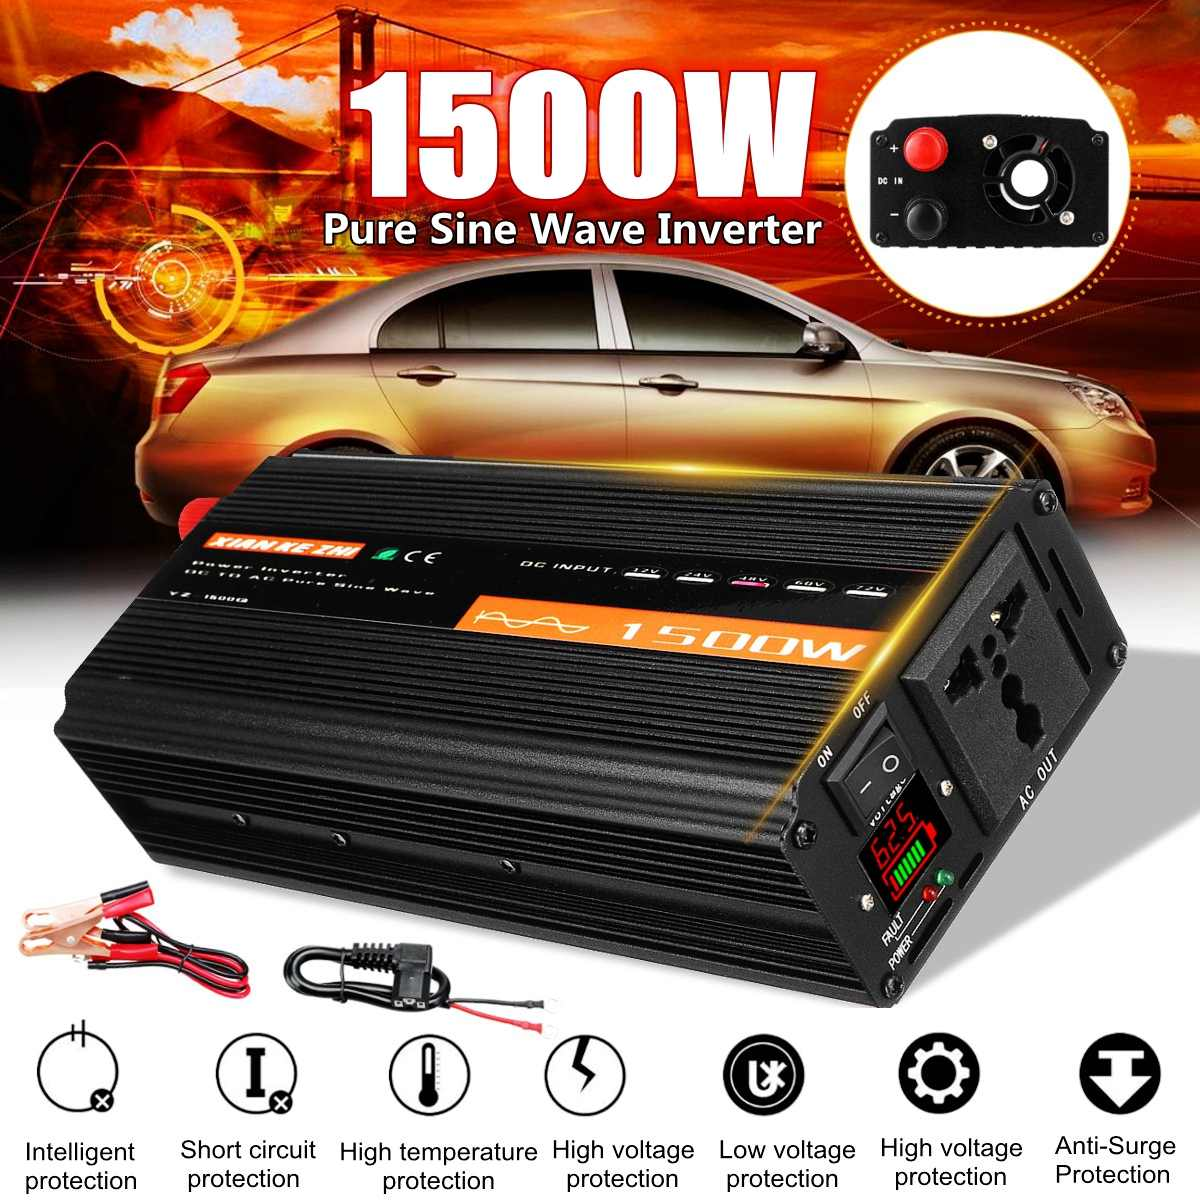 <font><b>1500W</b></font> Pure Sine Wave <font><b>Inverter</b></font> DC12V/24V/48V To AC220V 50HZ Power Converter Booster For Car <font><b>Inverter</b></font> Household DIY image